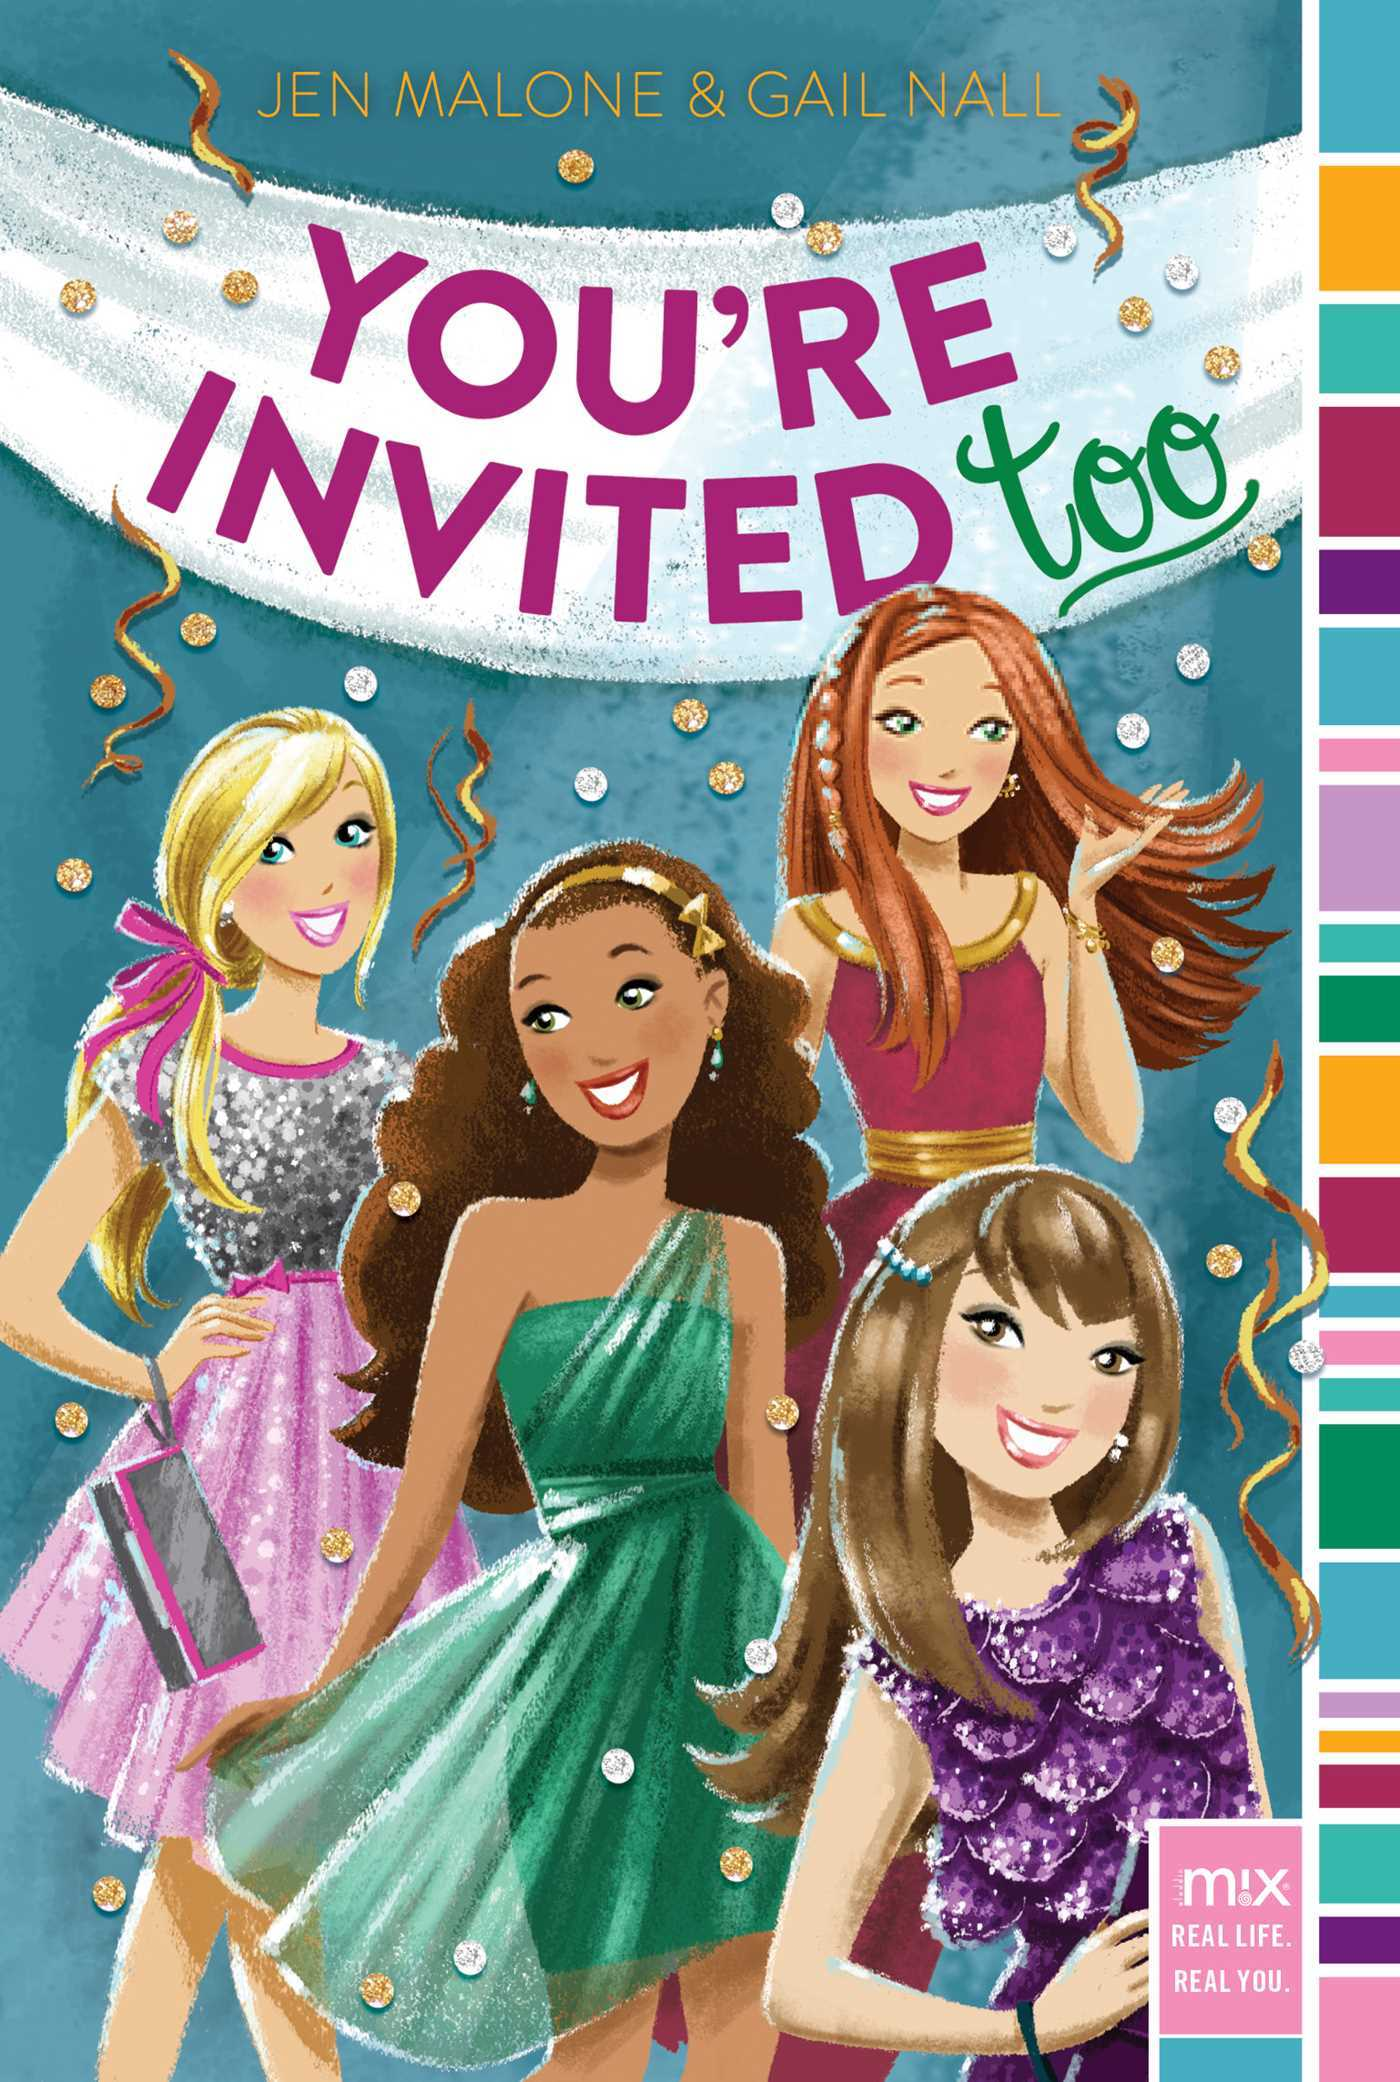 Youre Invited Too  by  Jen Malone